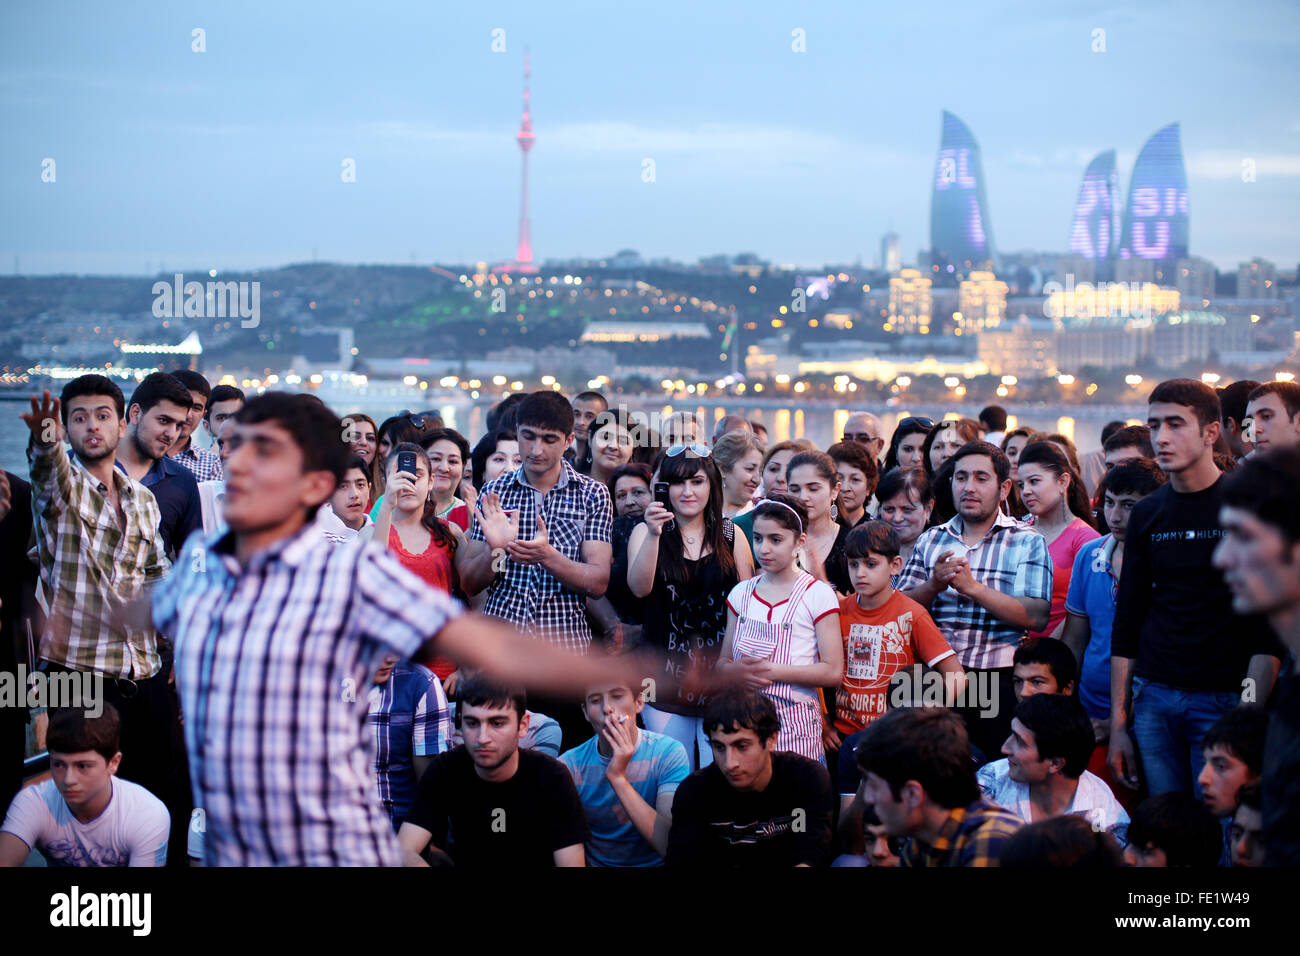 A man dances in the city of Baku, Azerbaijan - Stock Image